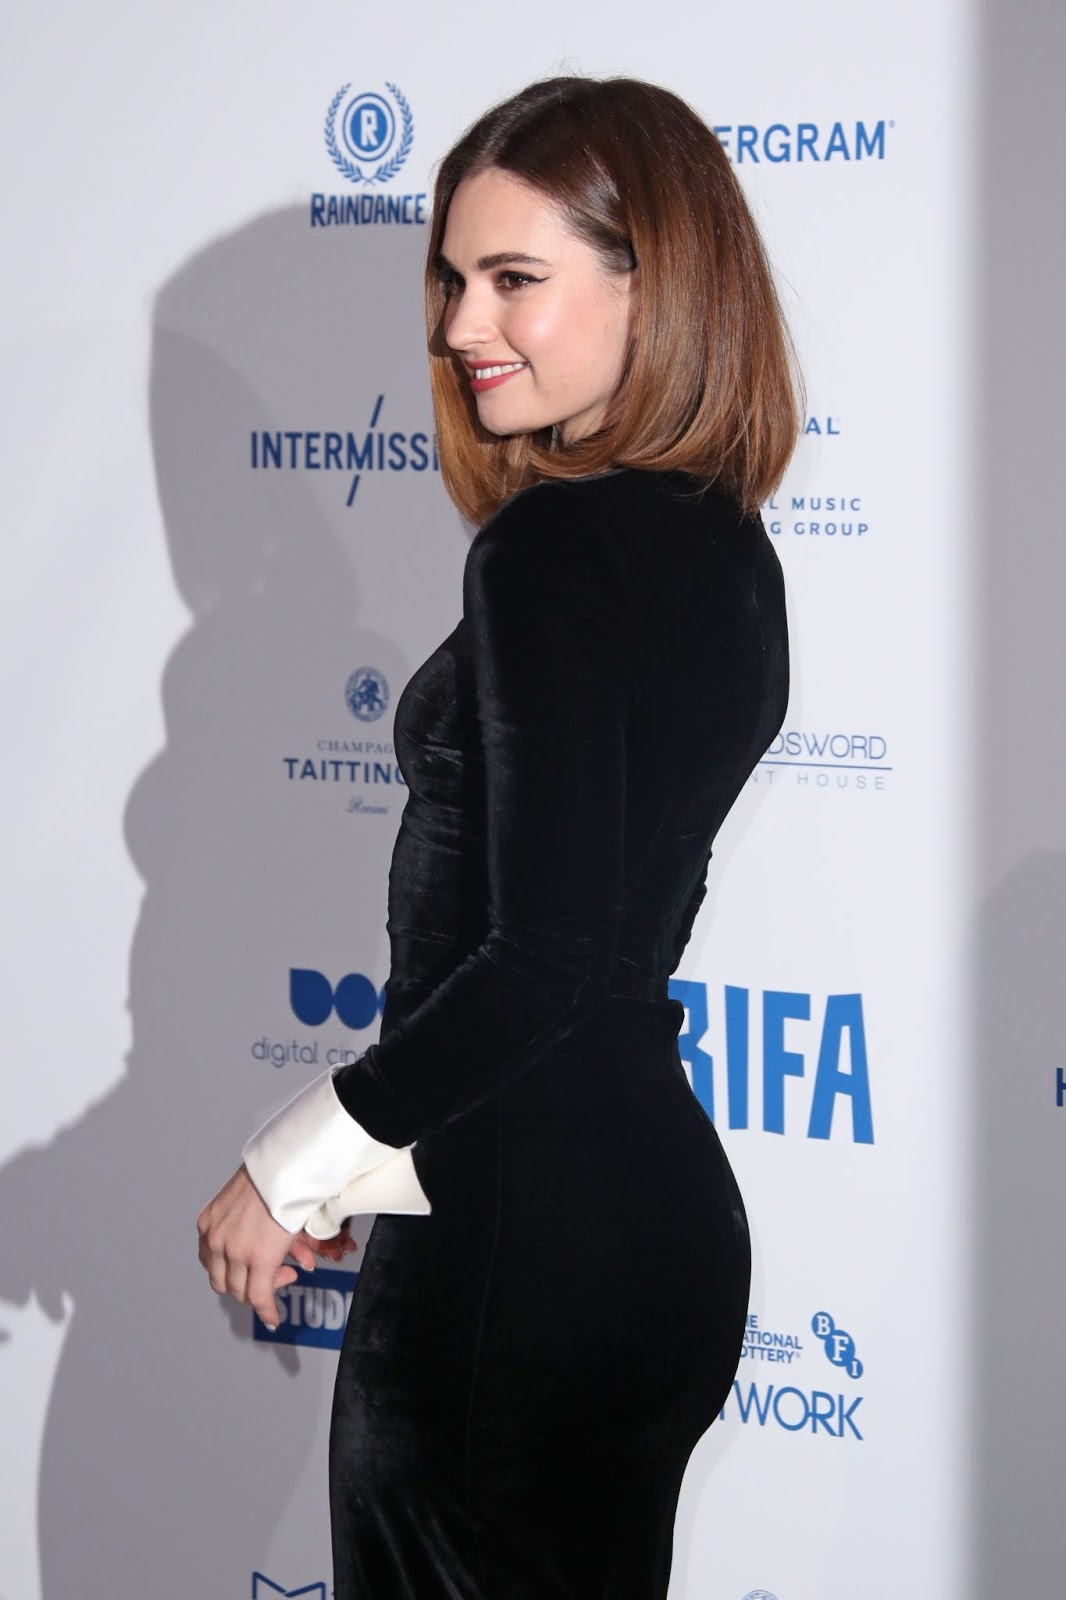 Lily attending the 22nd British Independent Film Awards